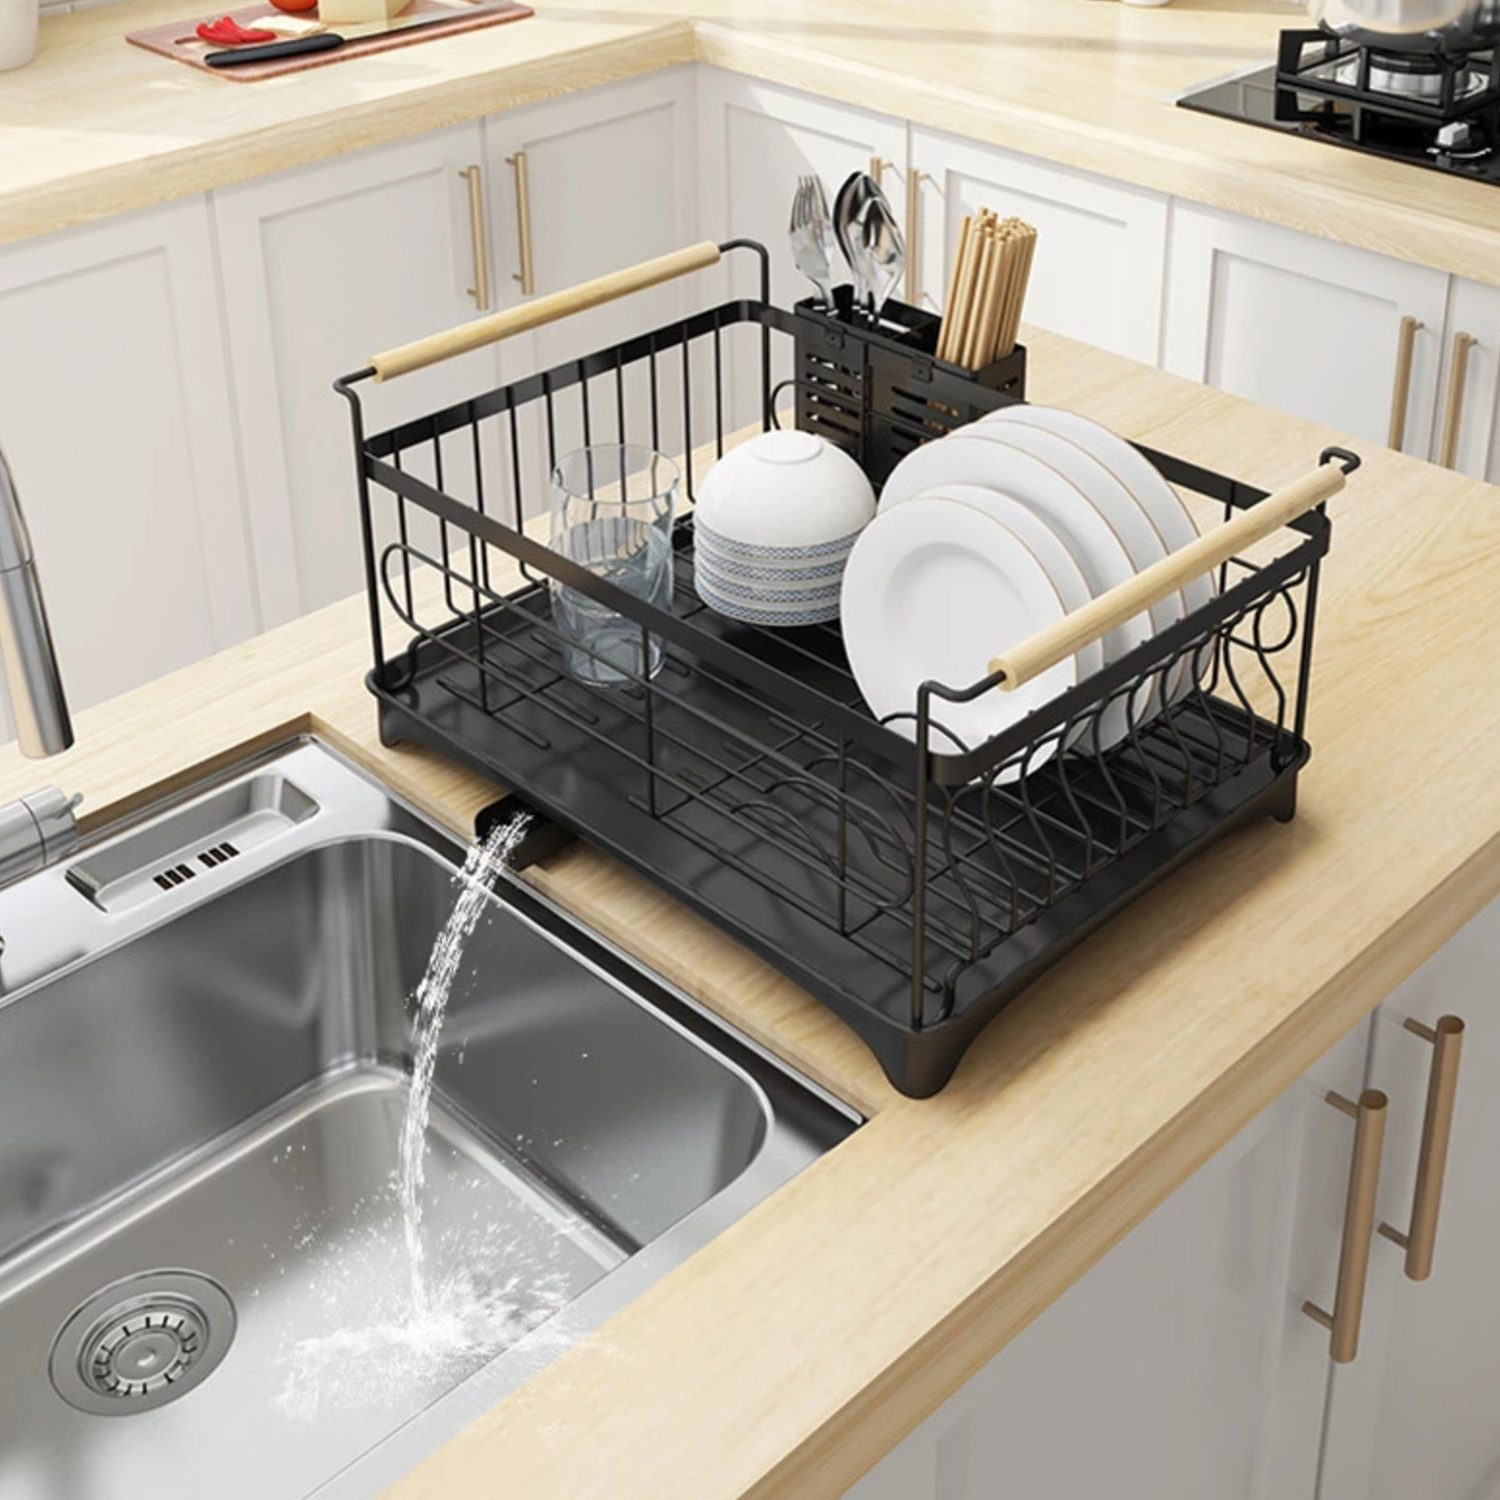 Dish Rack Bowl Holder Stainless Steel Kitchen Sink Drying Shelf Cutlery Drainer Dish Over Organizer Drain Rack With Chopsticks Cage Walmart Com Walmart Com